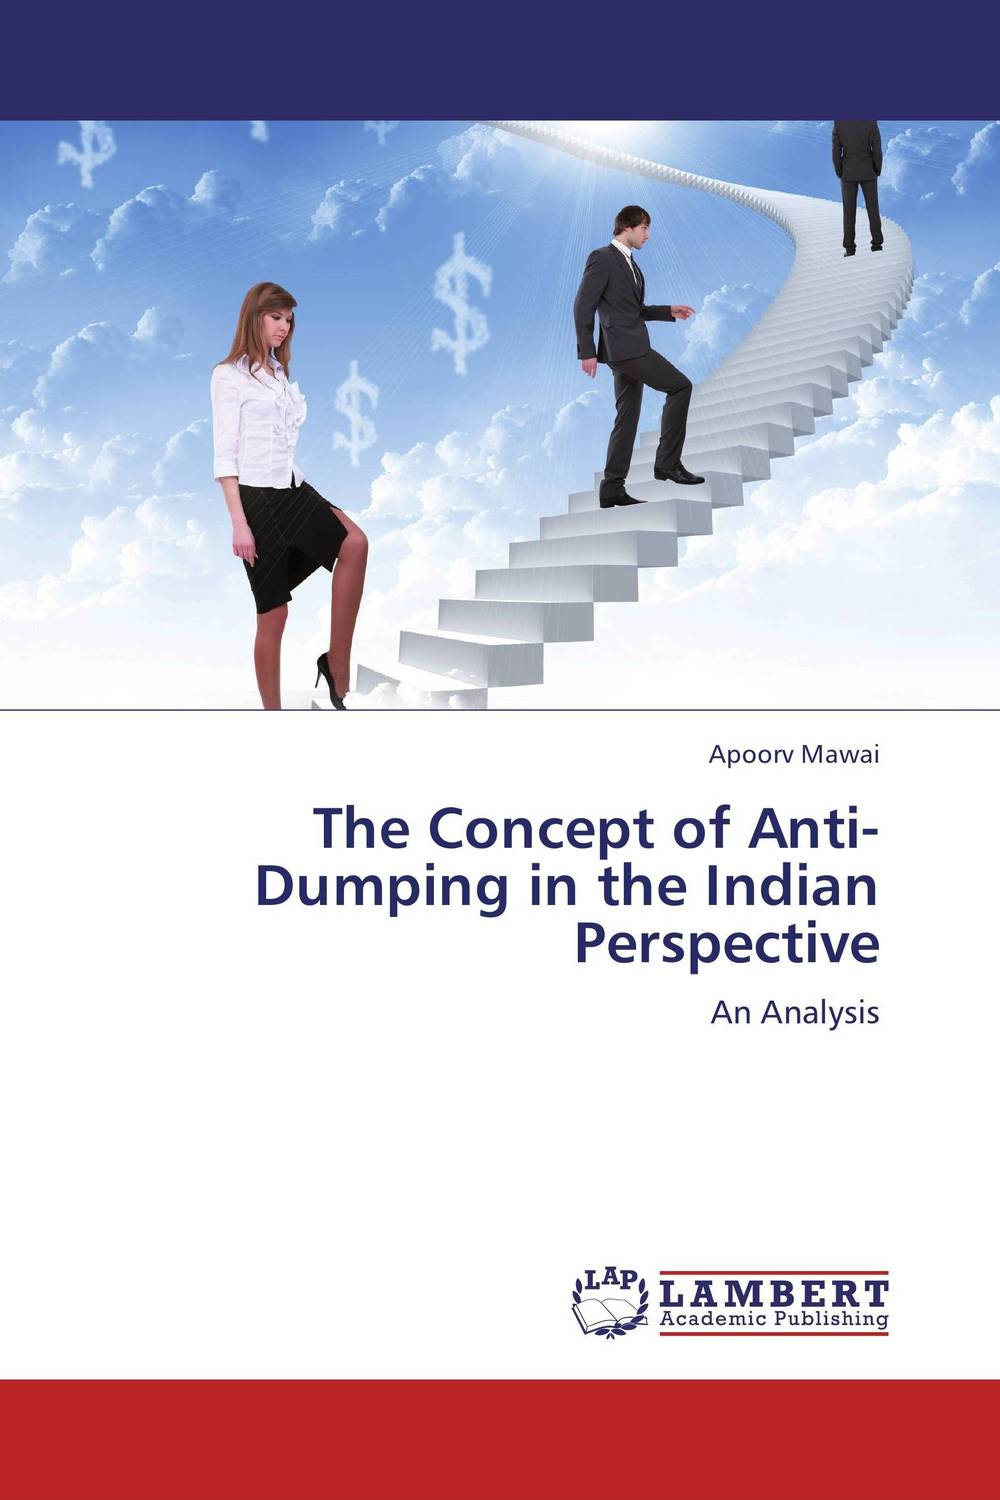 The Concept of Anti-Dumping in the Indian Perspective